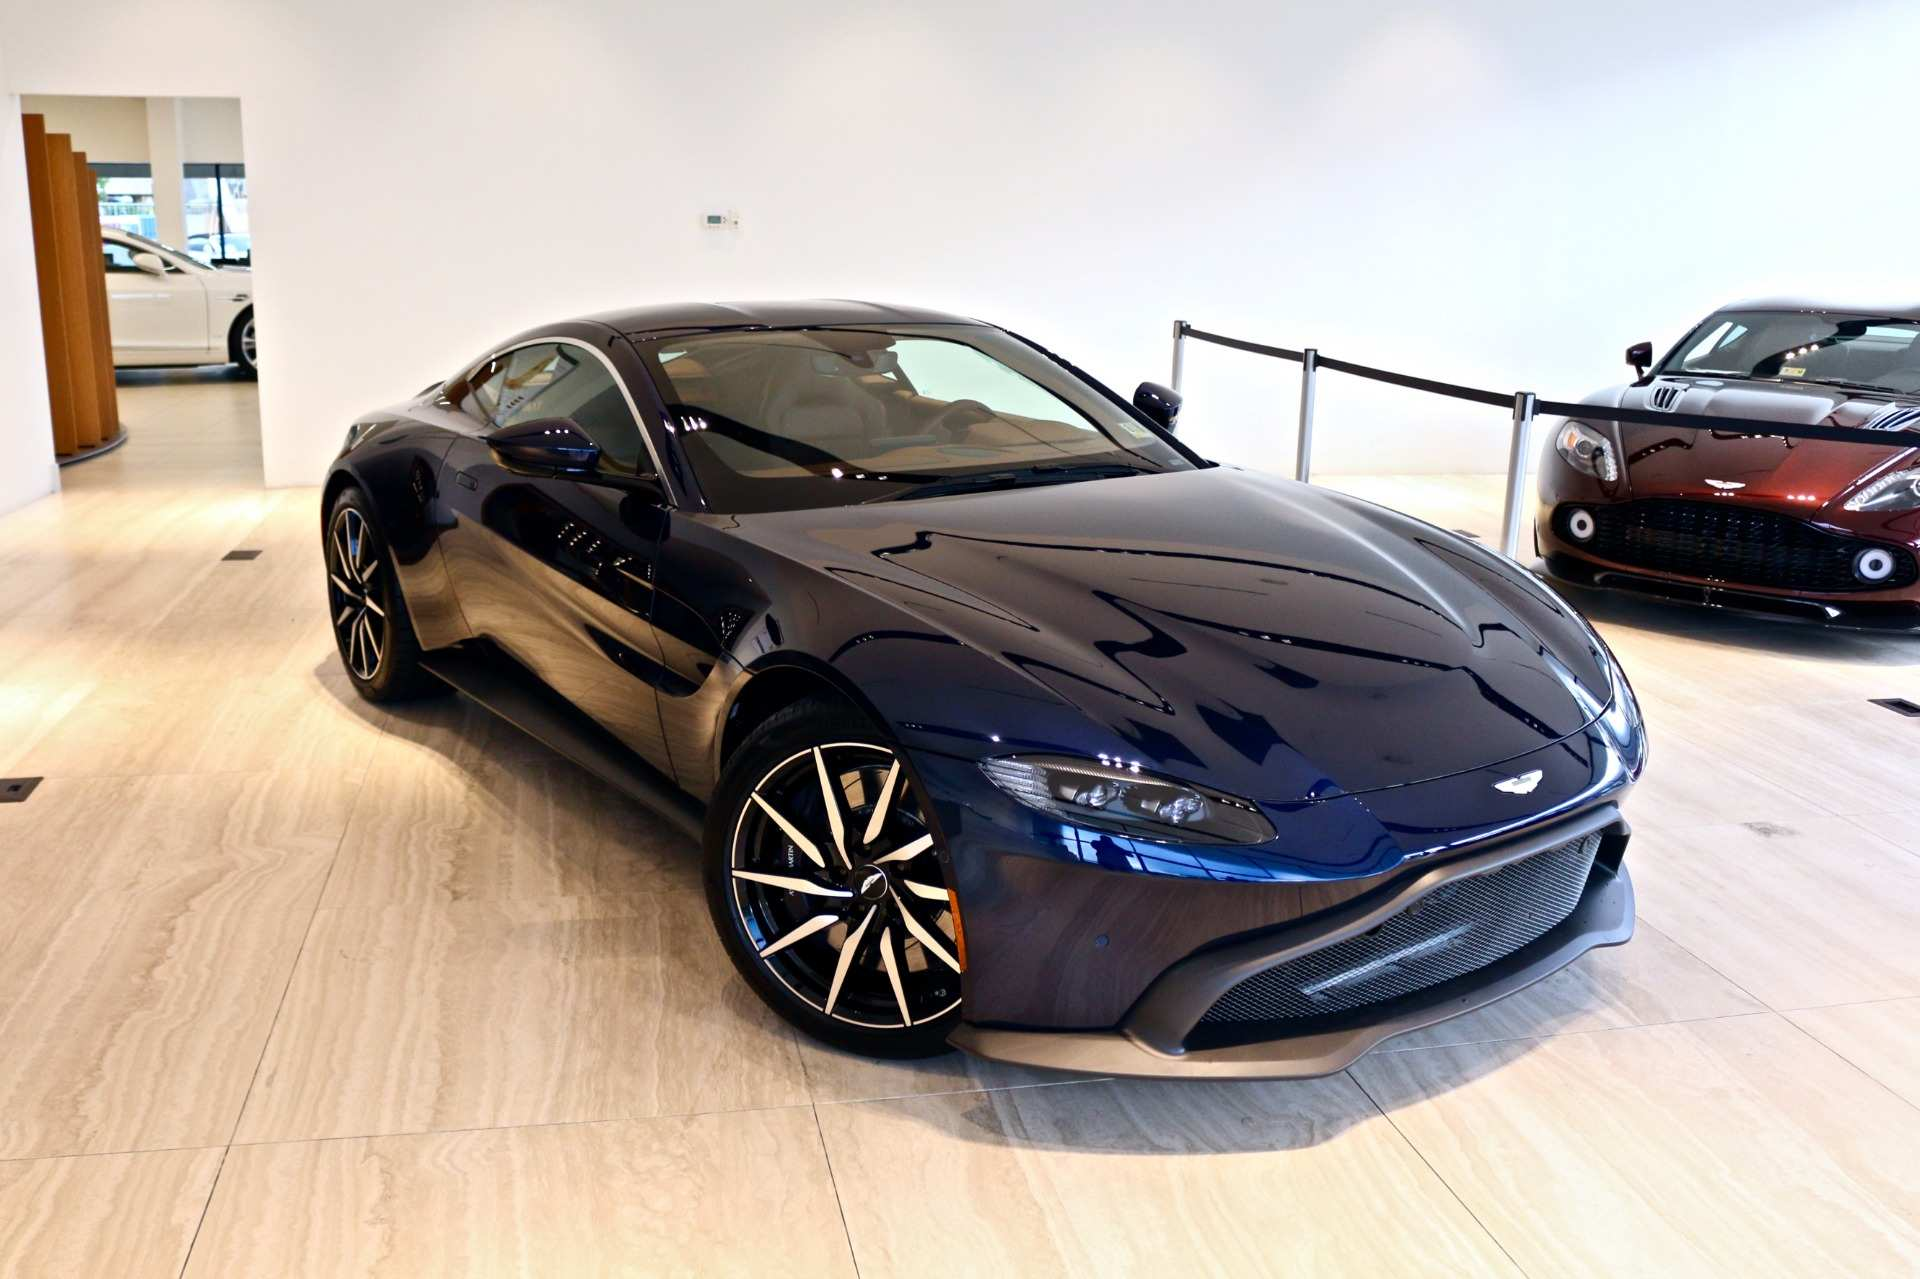 38 A 2019 Aston Martin Vantage For Sale Prices